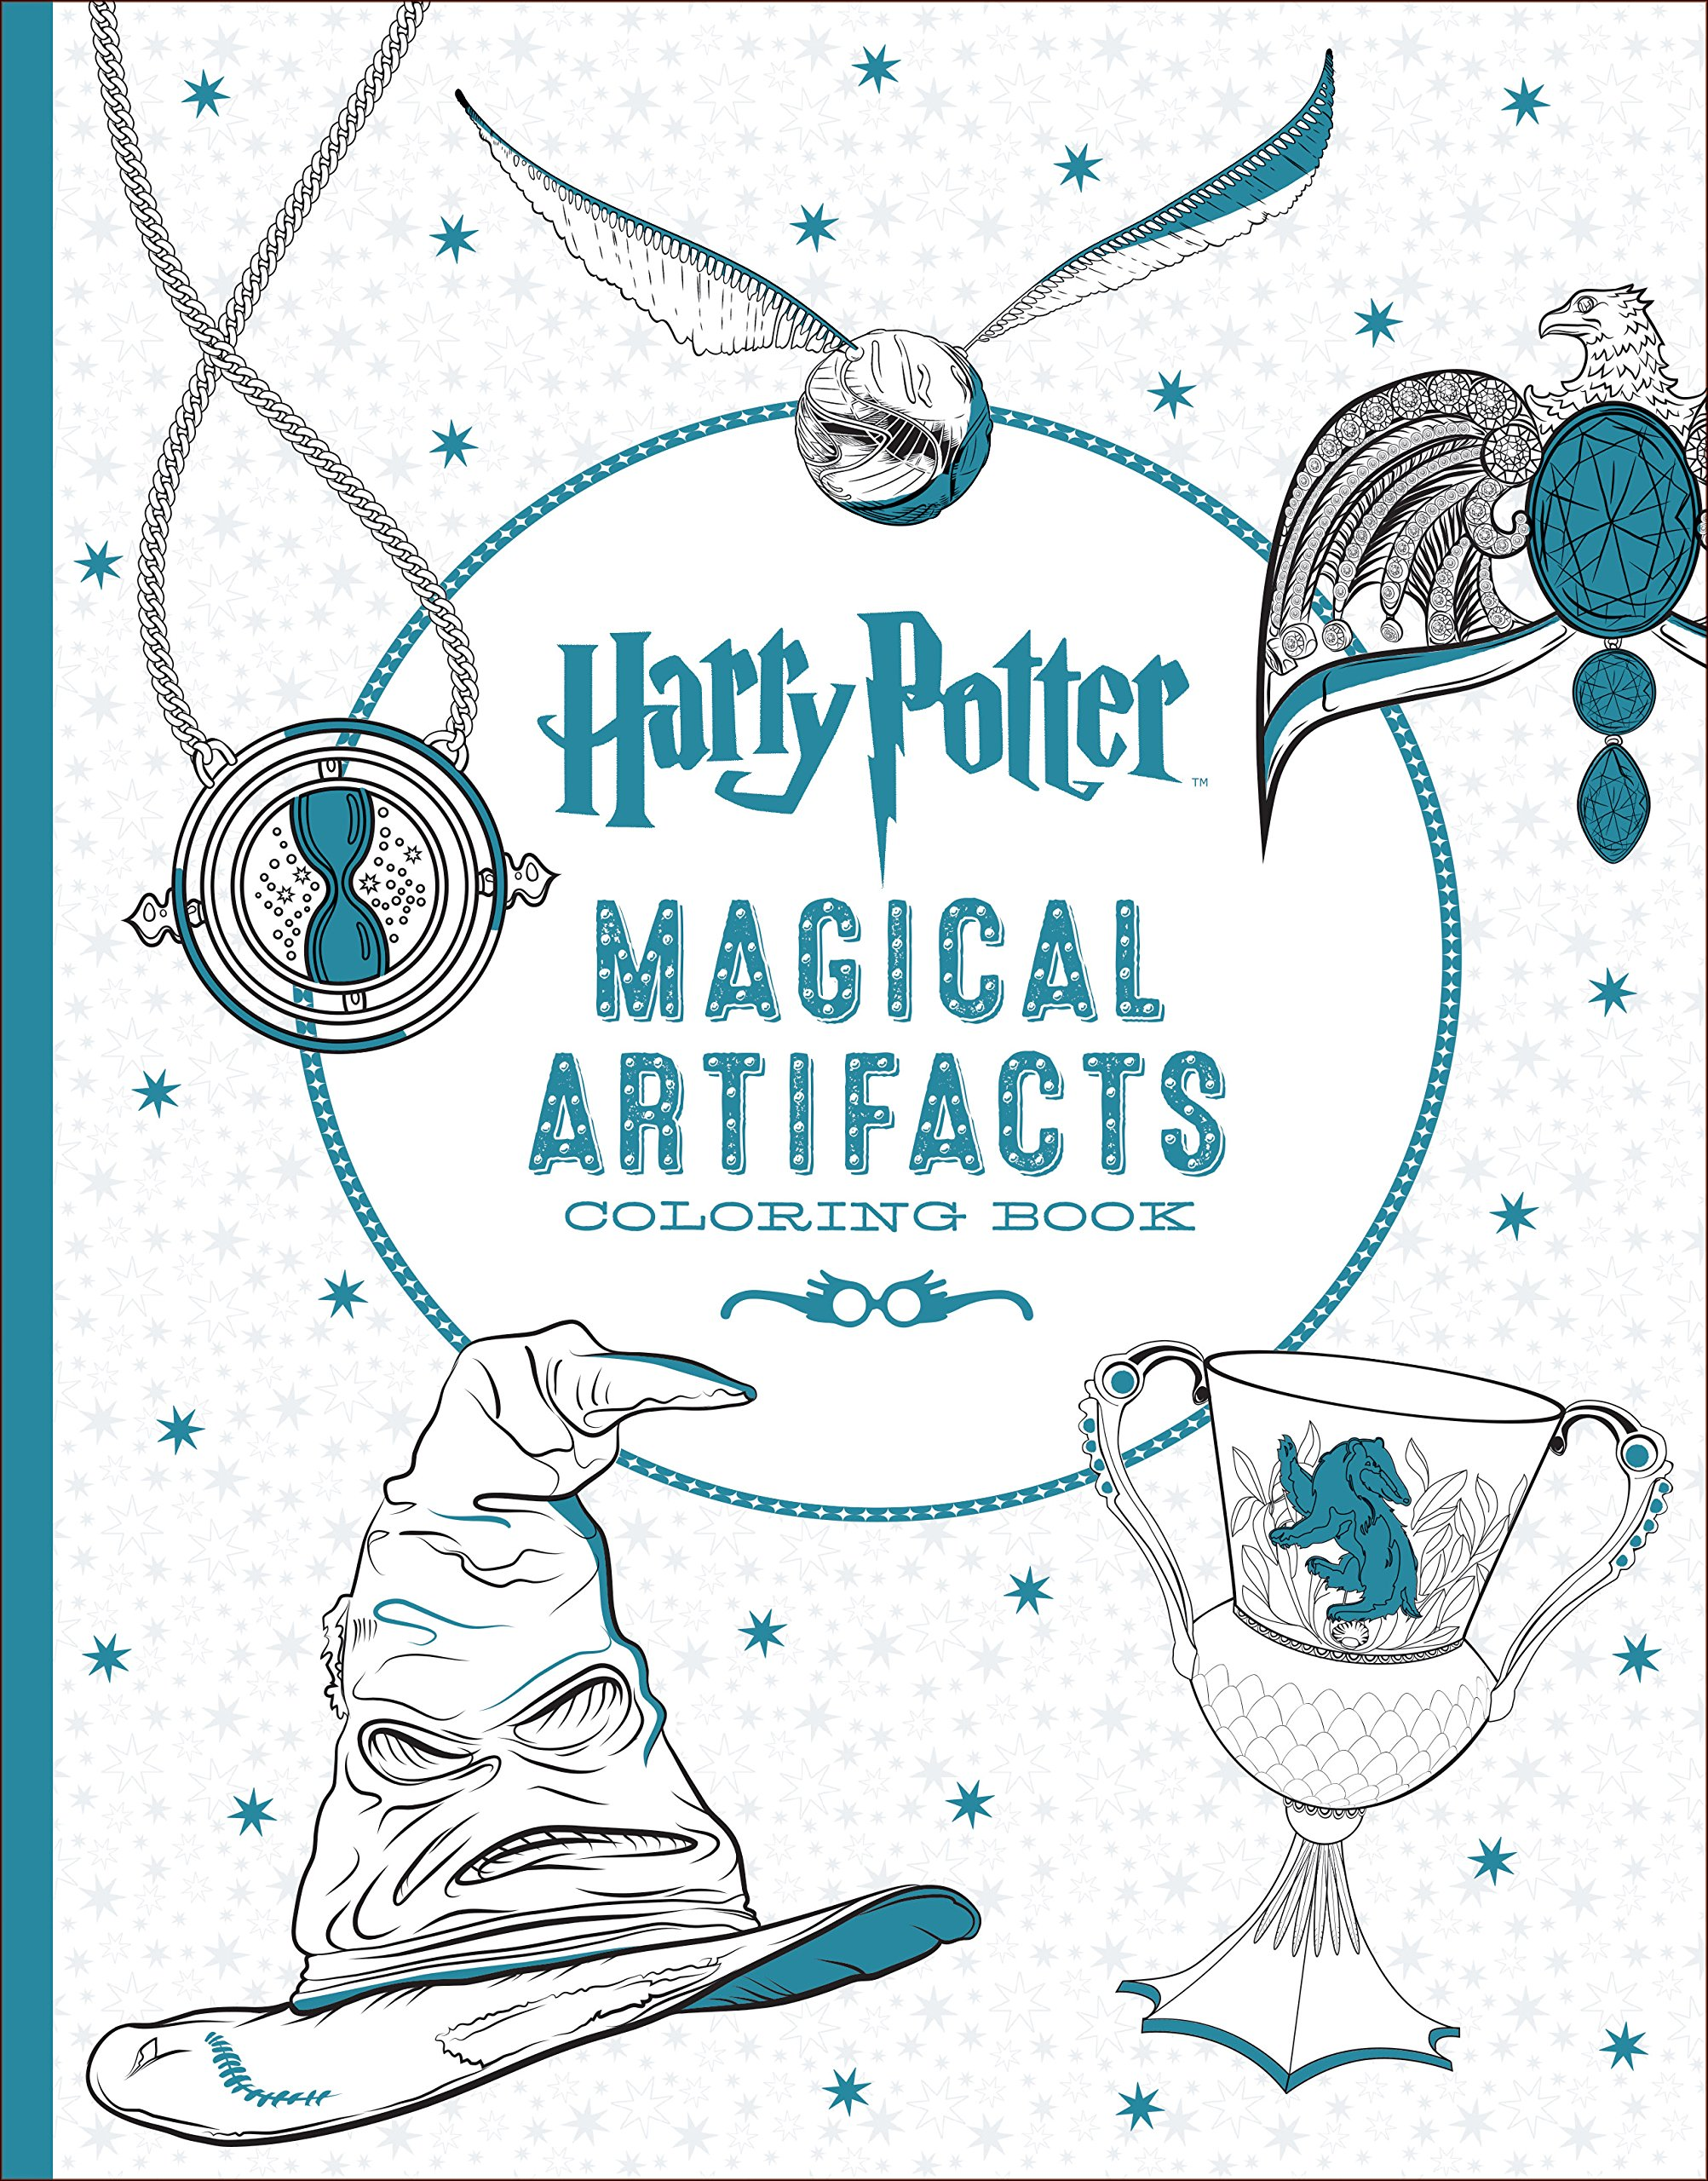 Harry Potter Magical Artifacts Coloring Book Scholastic 9781338030020 Amazon Books